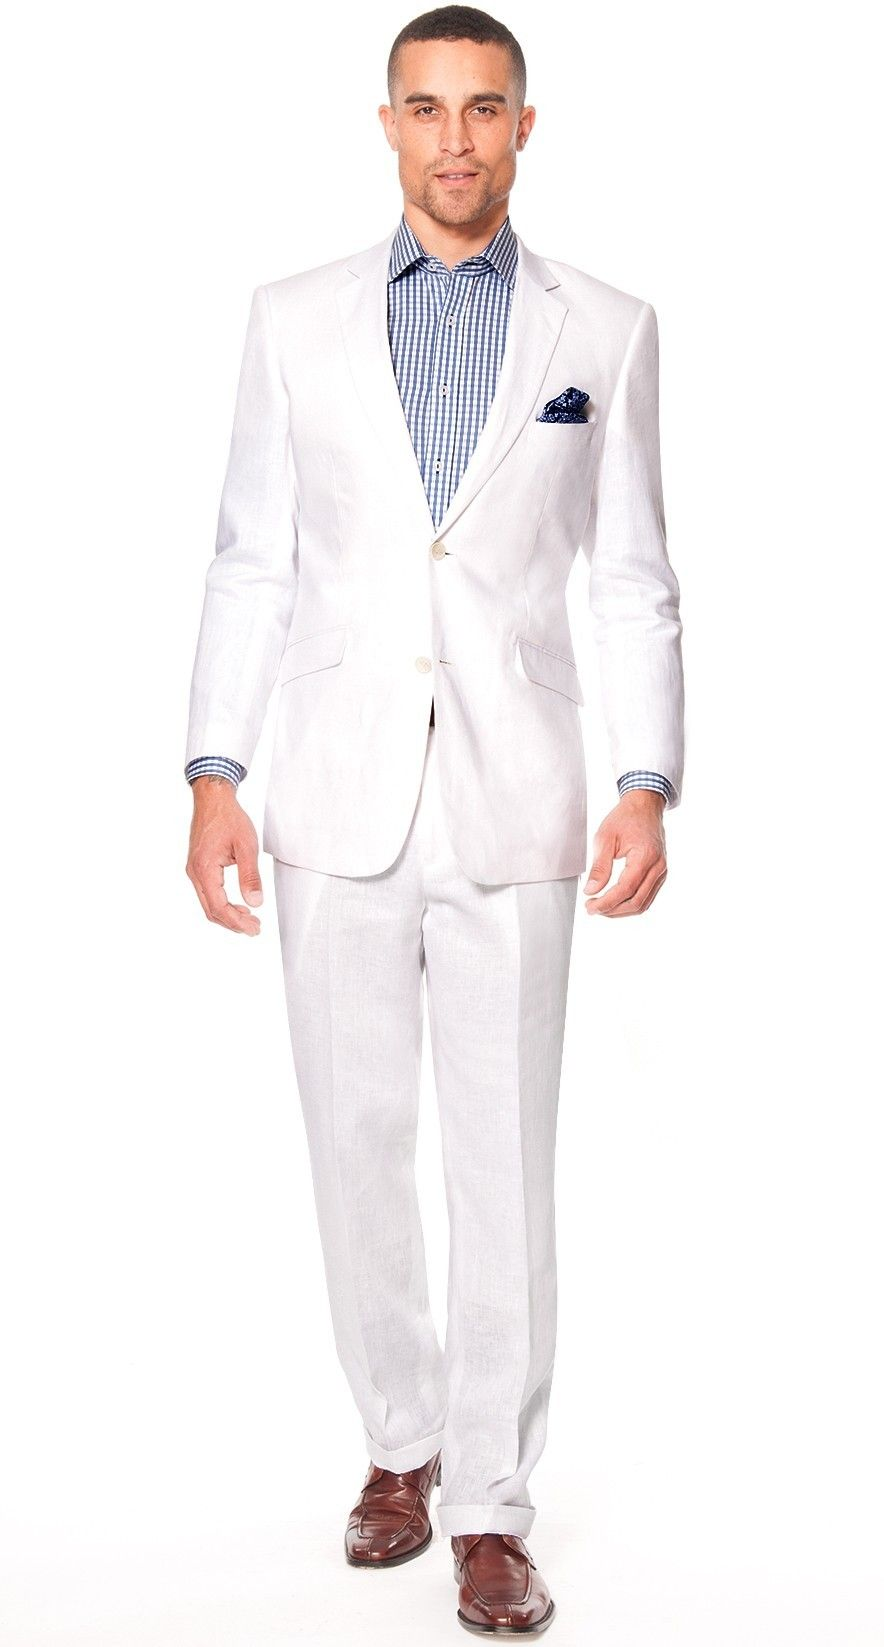 Monaco 2014 Modern Fit Linen Suit for Men - White $398.00 -- Tulum ...